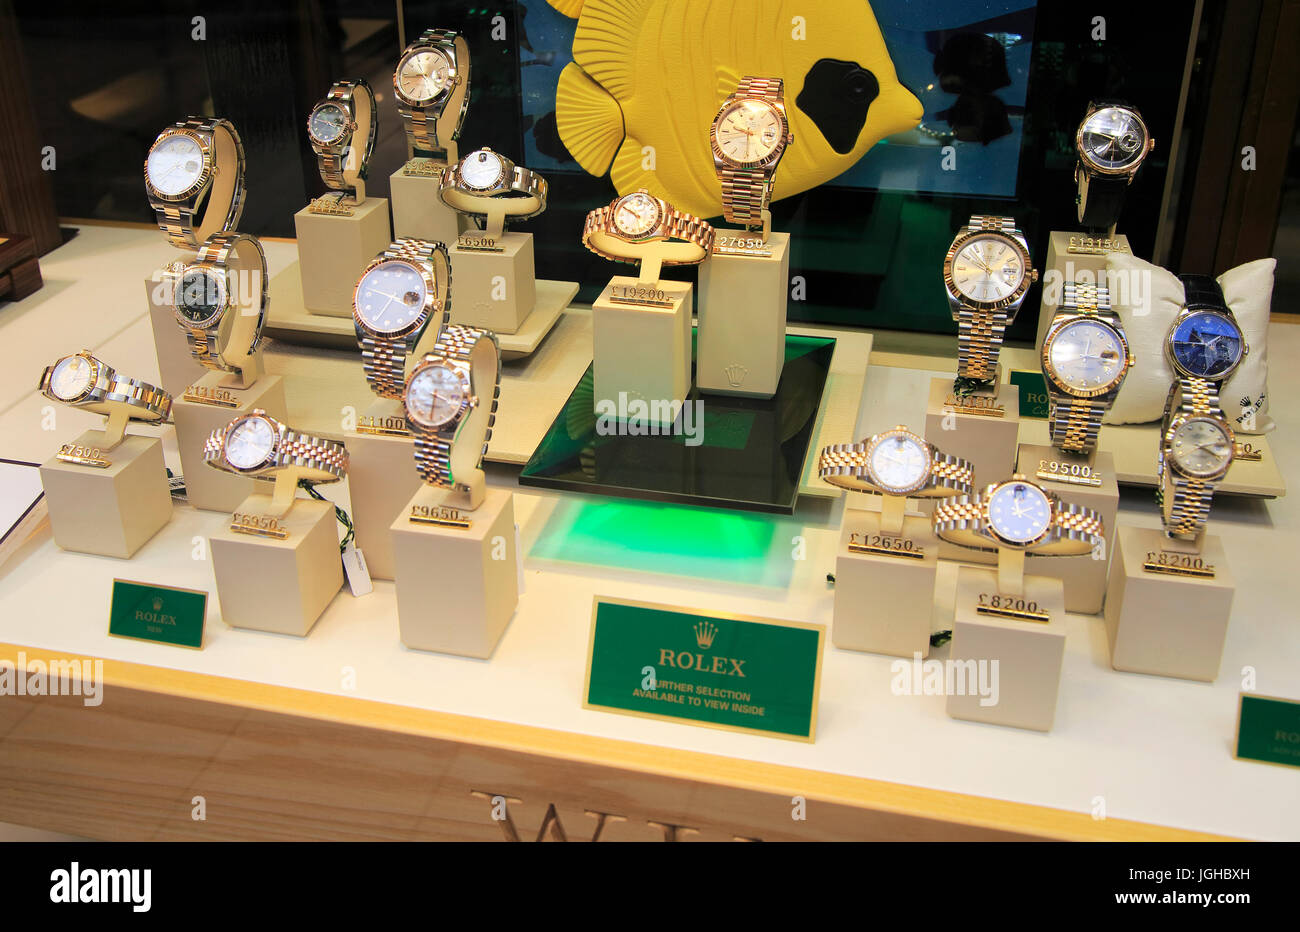 e2eb8982e4d Winsor Bishop jewellery shop window display of expensive Rolex watches